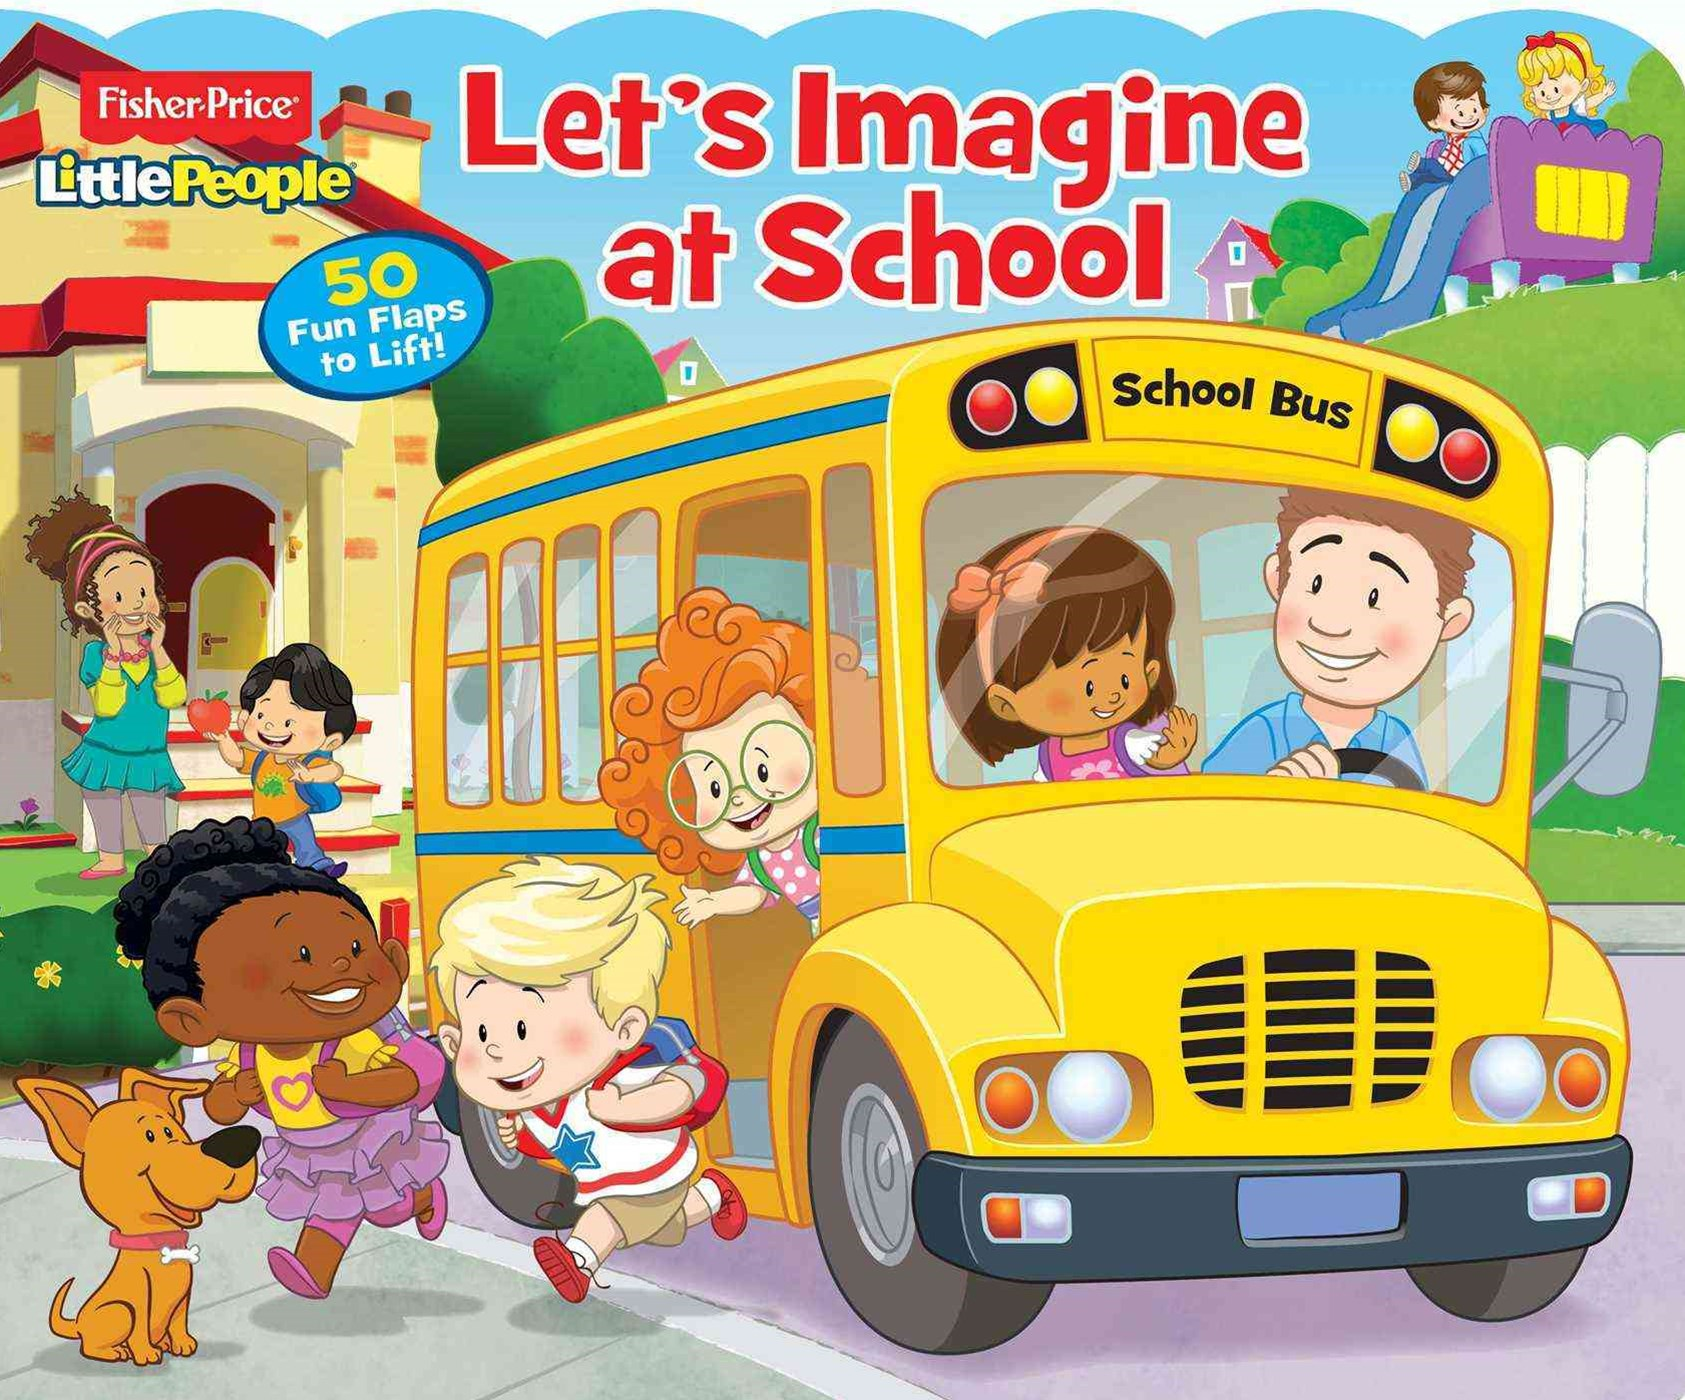 Fisher-Price Little People Let's Imagine at School!